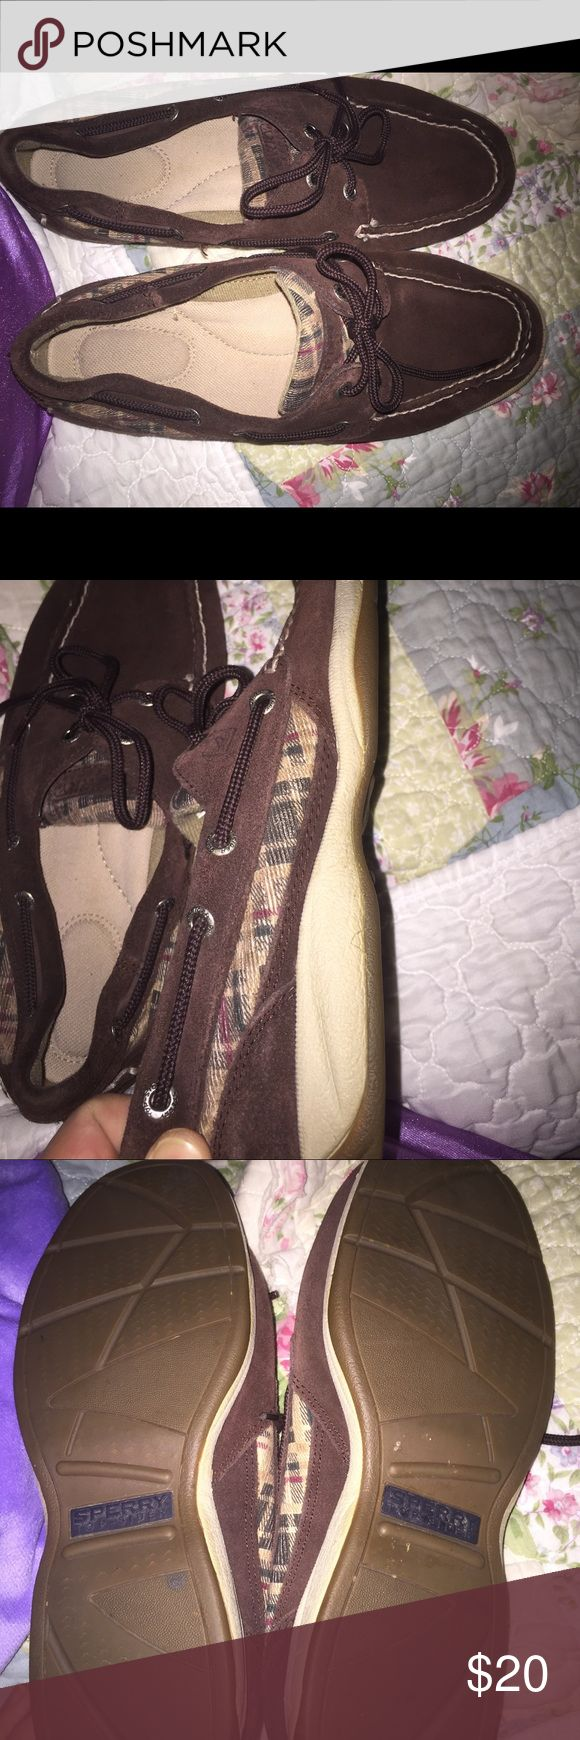 Ladies Sperry Topsider Up for sale is a nice pair of Ladies sz 9 chocolate brown suede Sperrys, only tried on around house. Exc condition. Sperry Top-Sider Shoes Flats & Loafers